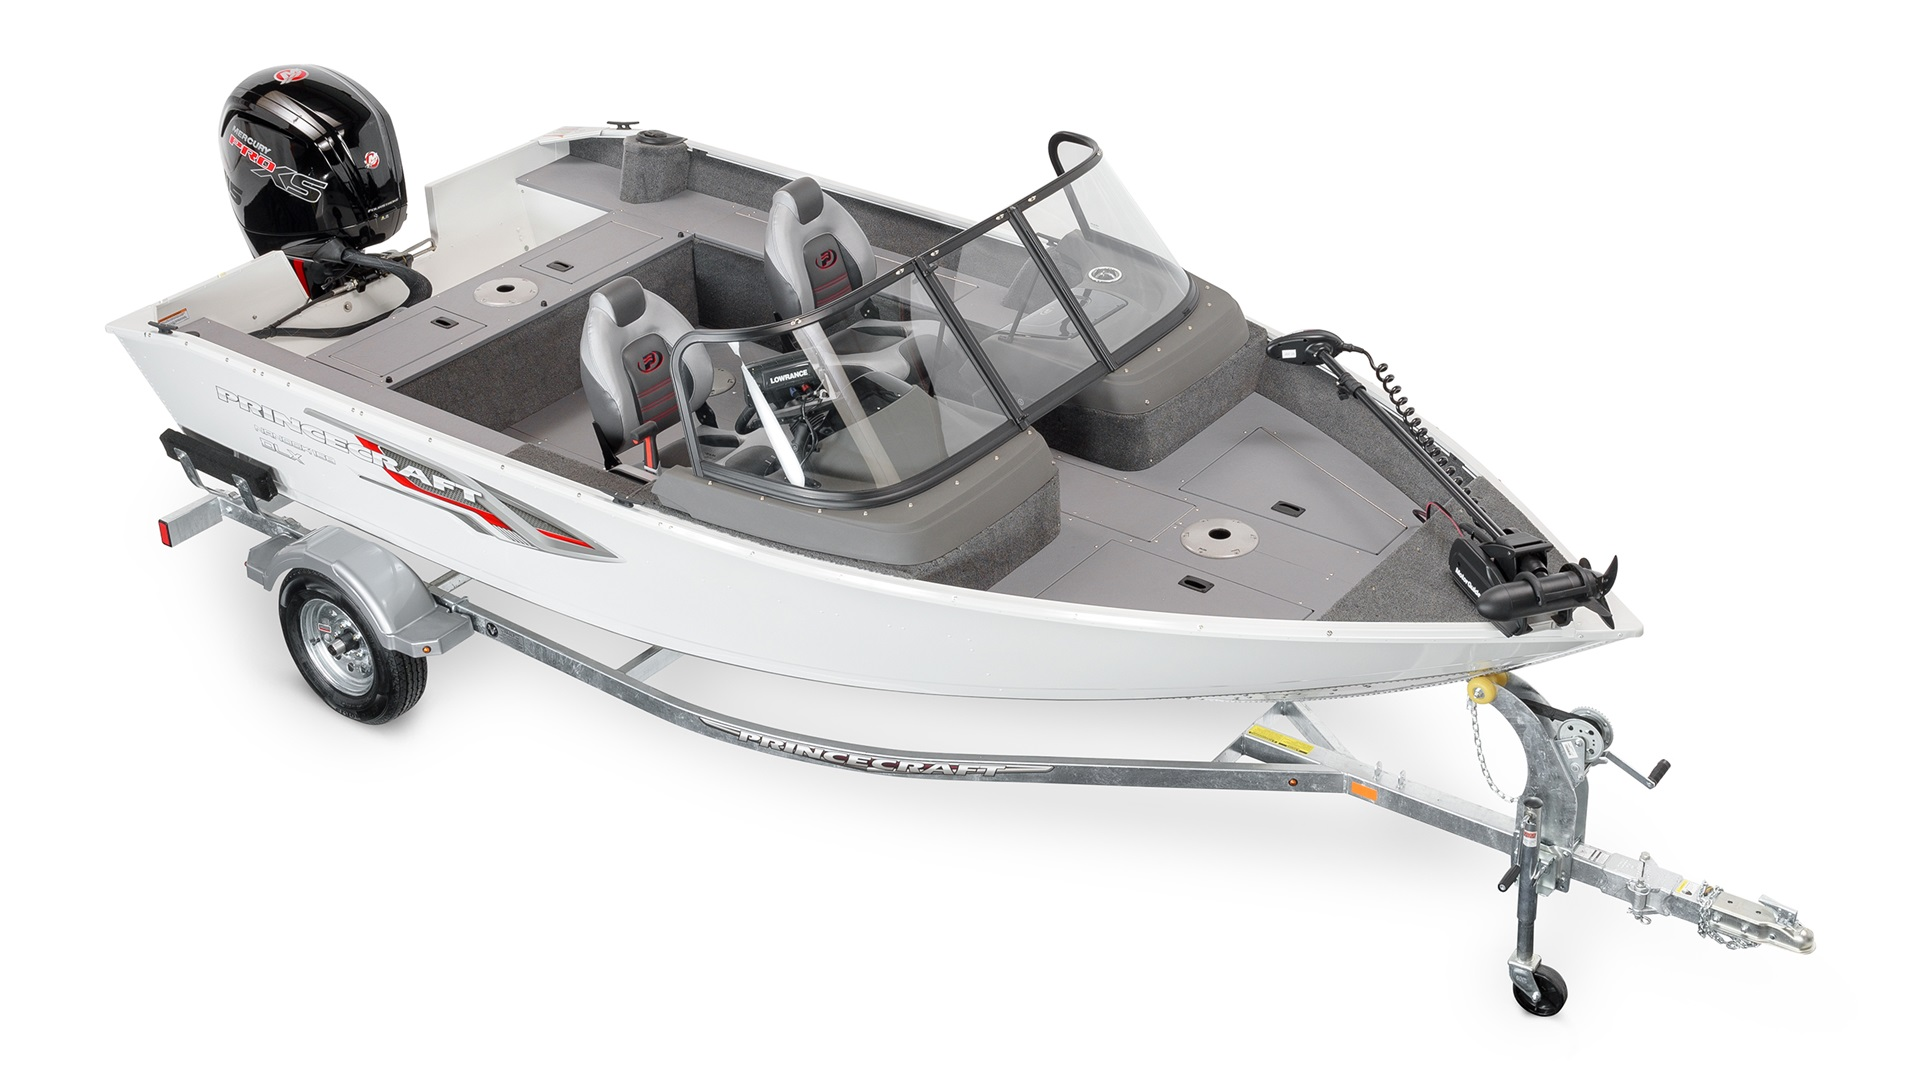 Nanook 168 Dlx Ws 2019 Fishing Boats Princecraft 24v Trolling Motor General Discussion Forum Indepth Outdoors